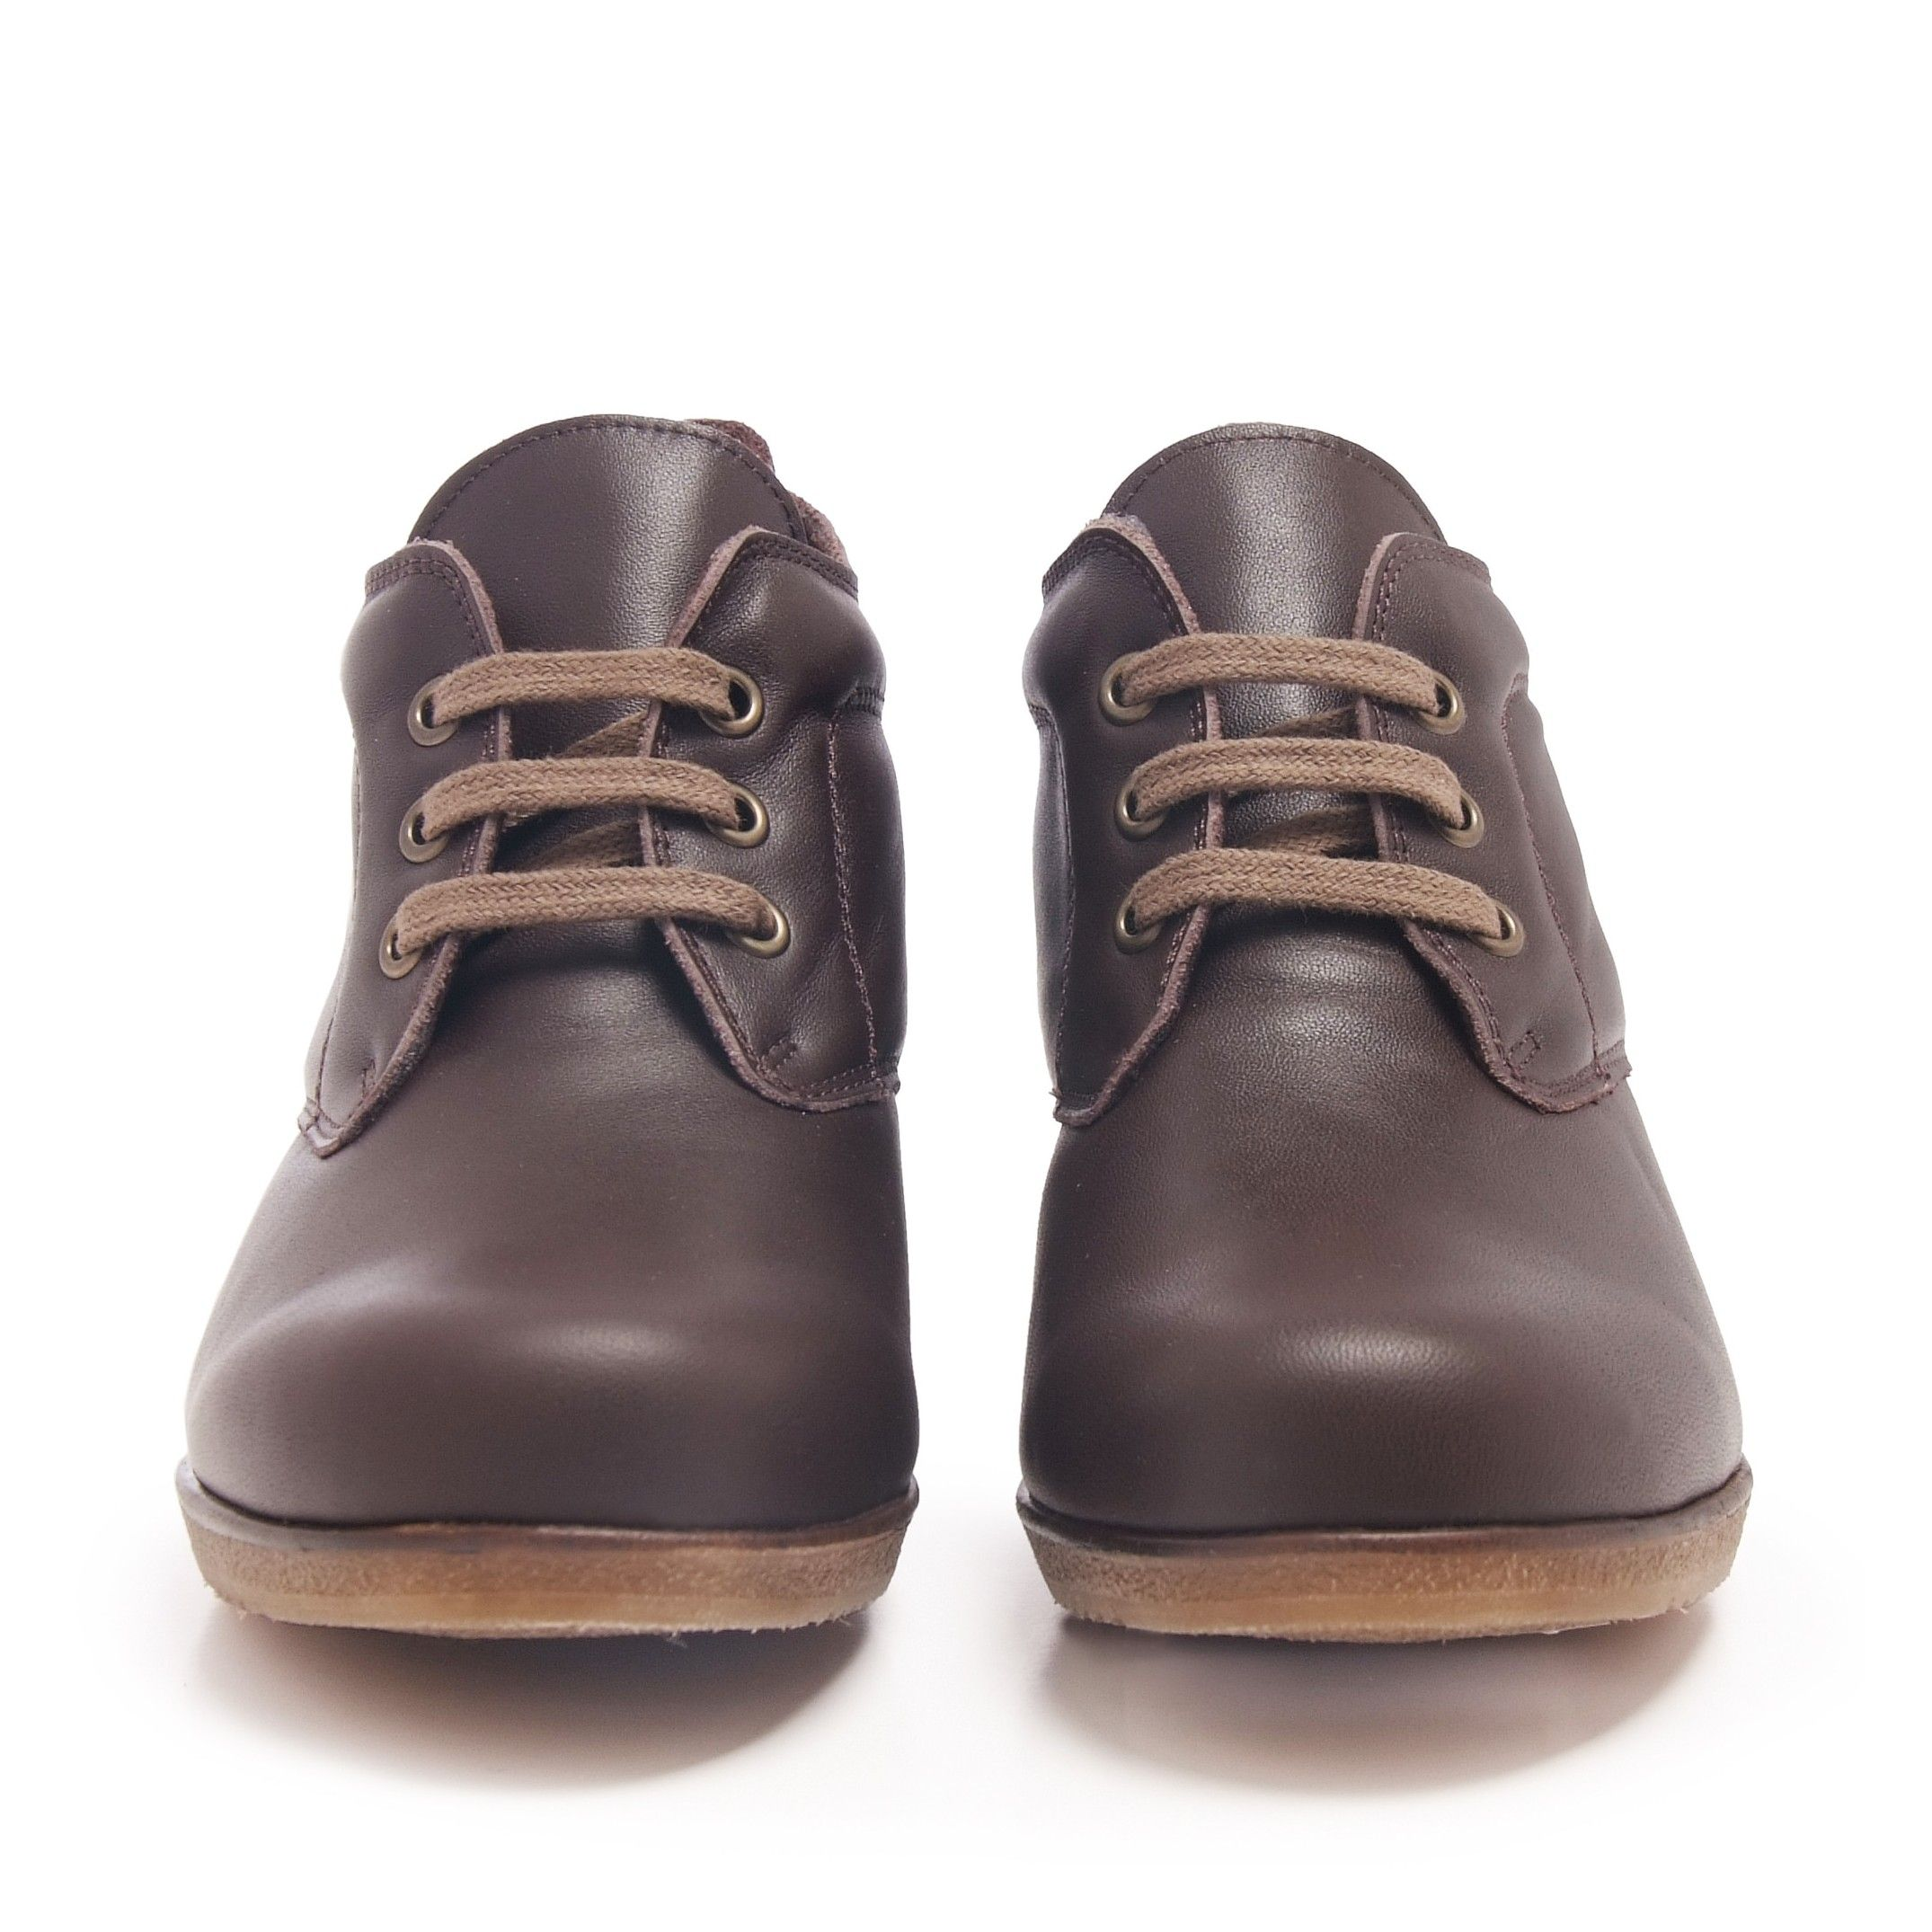 Men's Lace Up Leather Booties